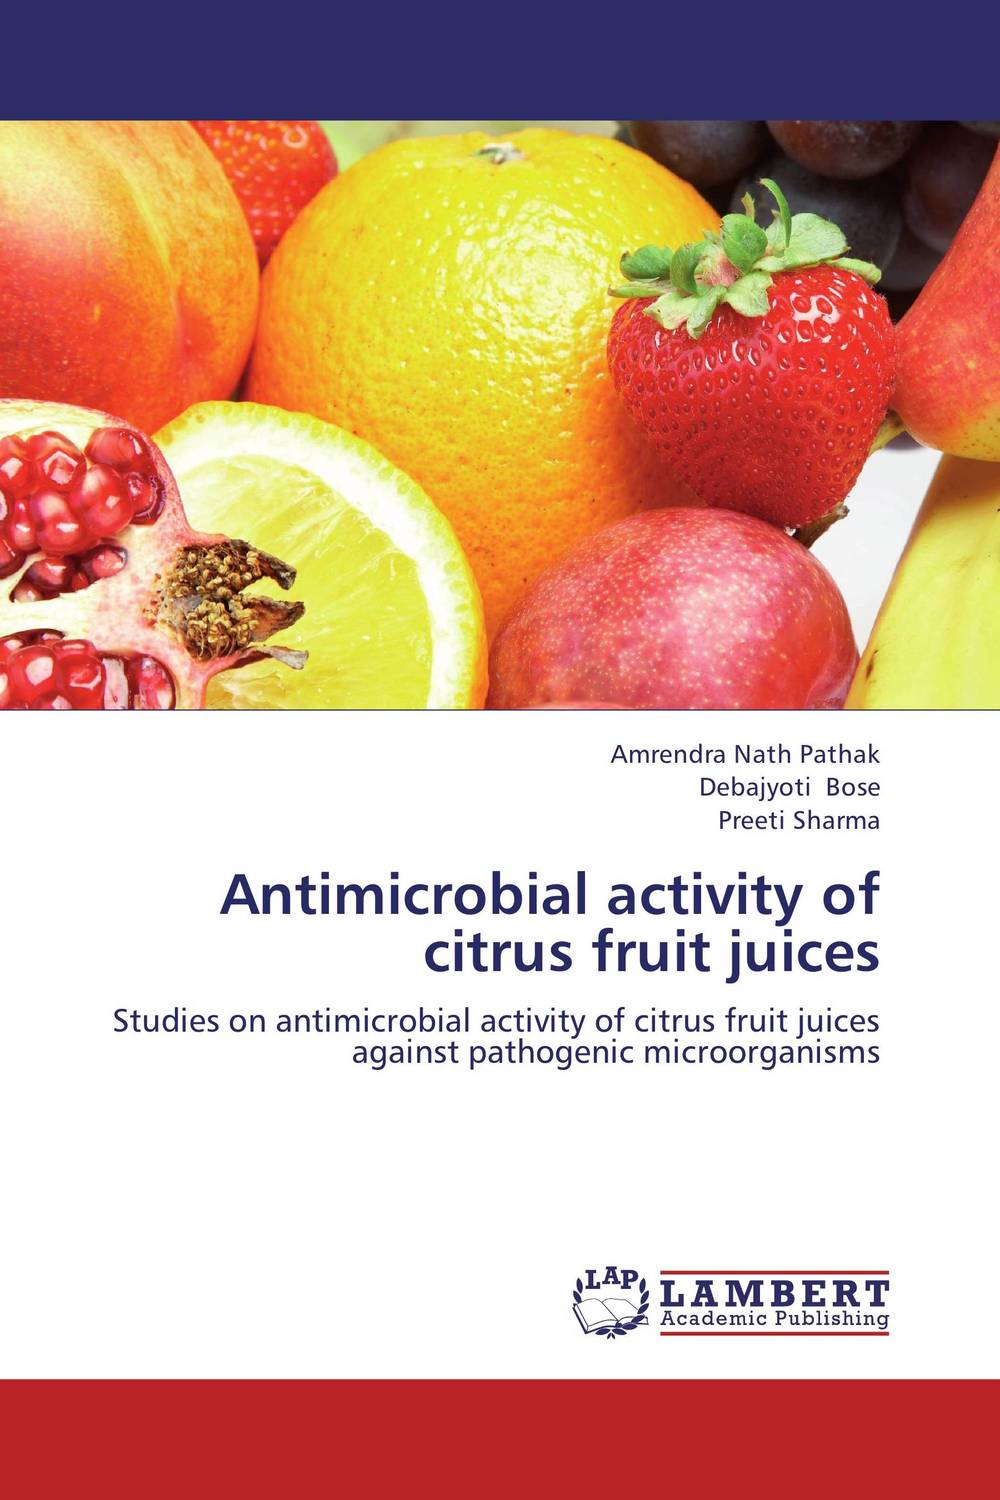 Antimicrobial activity of citrus fruit juices quality control and safety of fruit juices nectars and dairy products